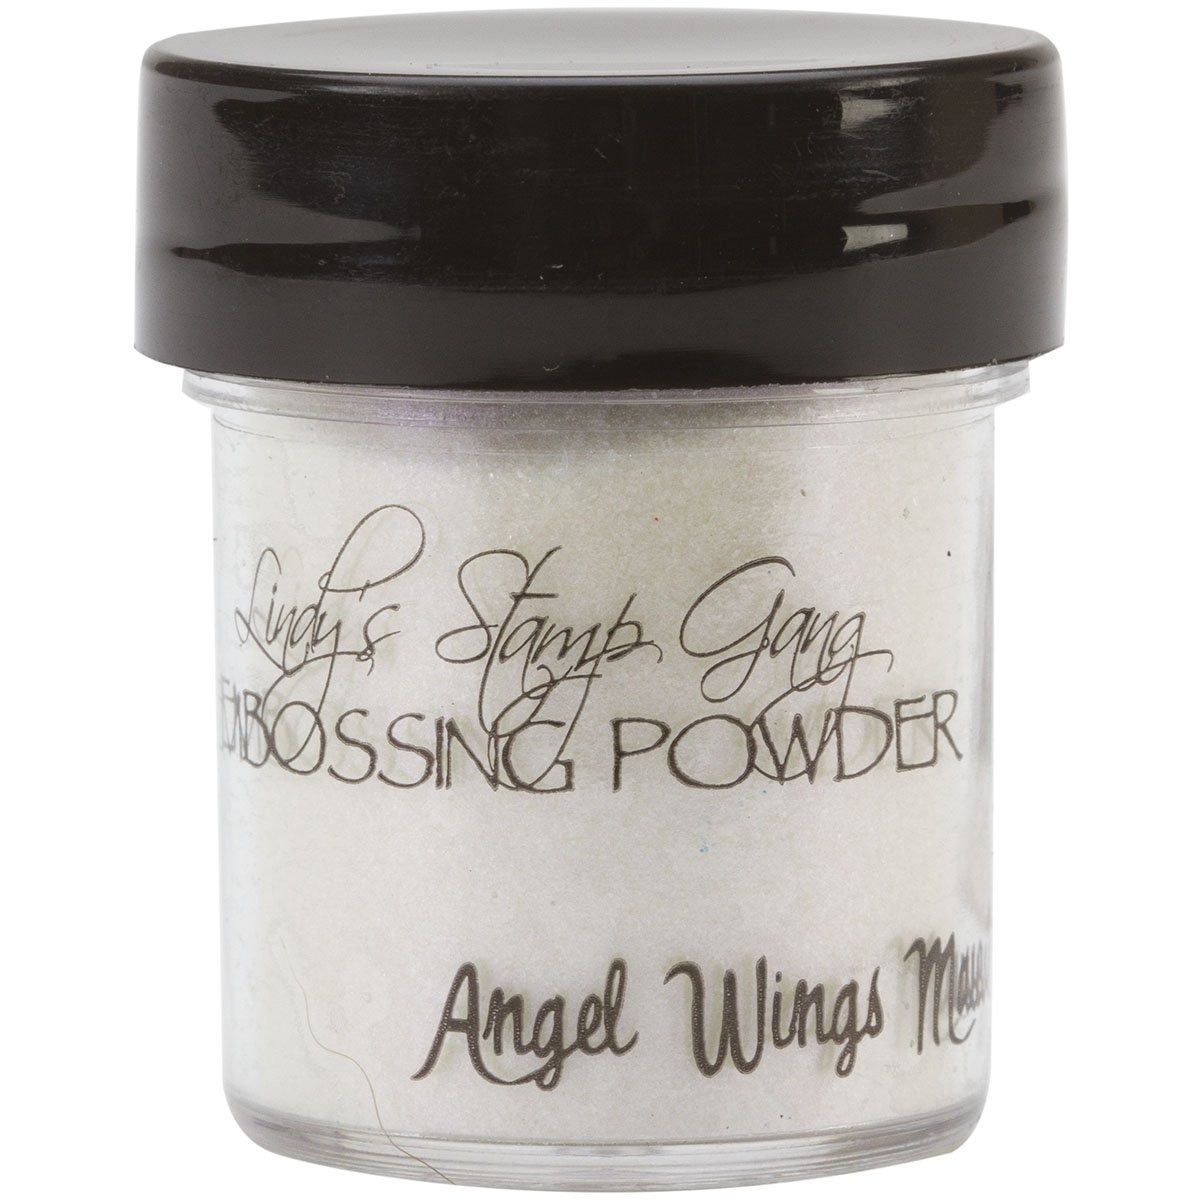 Angel Wings Mauve 0.5-Ounce Jar Lindys Stamp Gang 2-Tone Embossing Powder